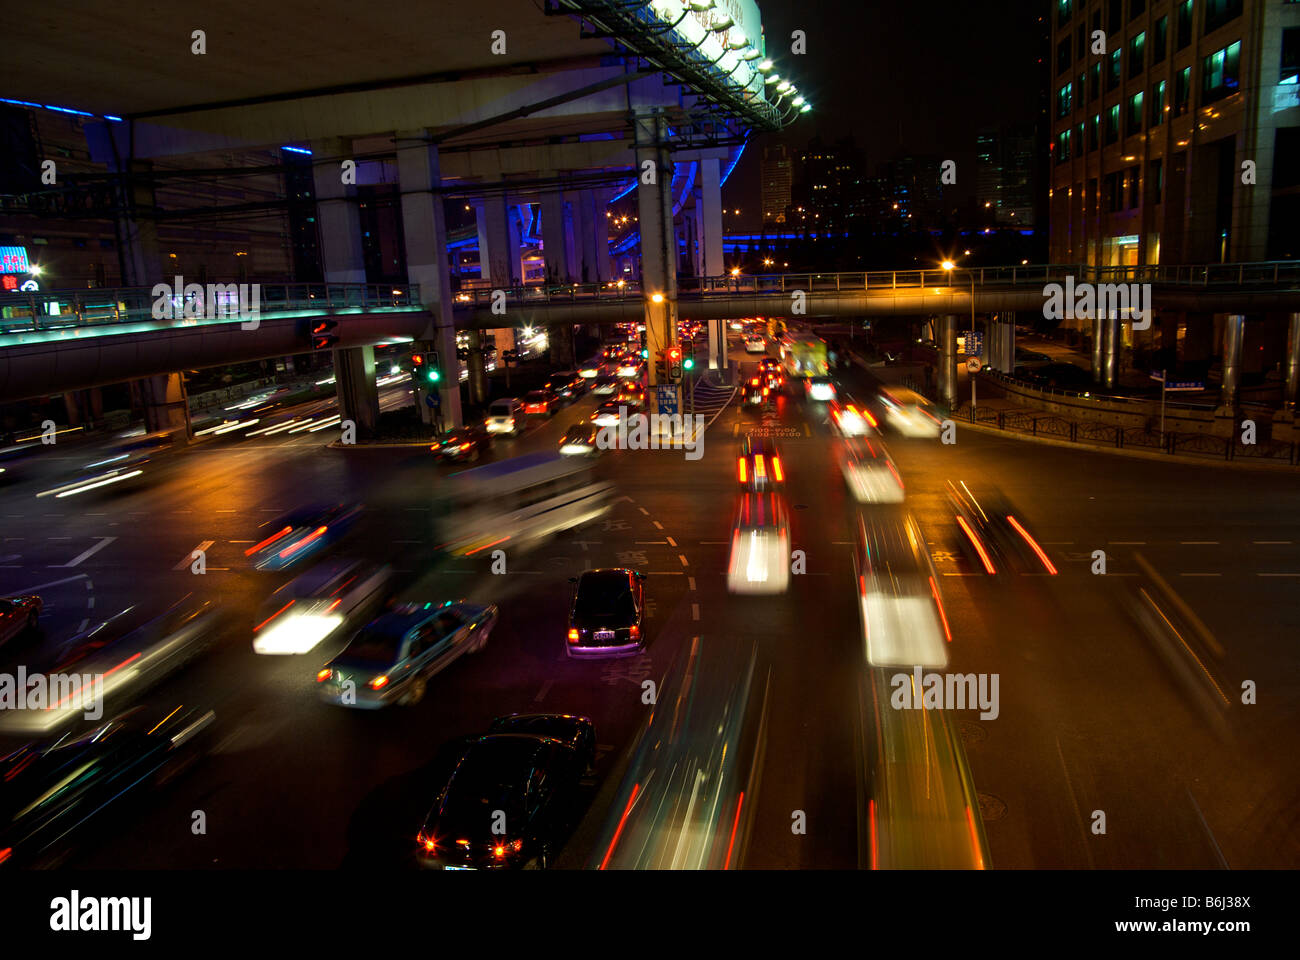 Downtown Shanghai traffic in chaotic motion blur rush hour gridlock at a big intersection under a freeway  pedestrian - Stock Image